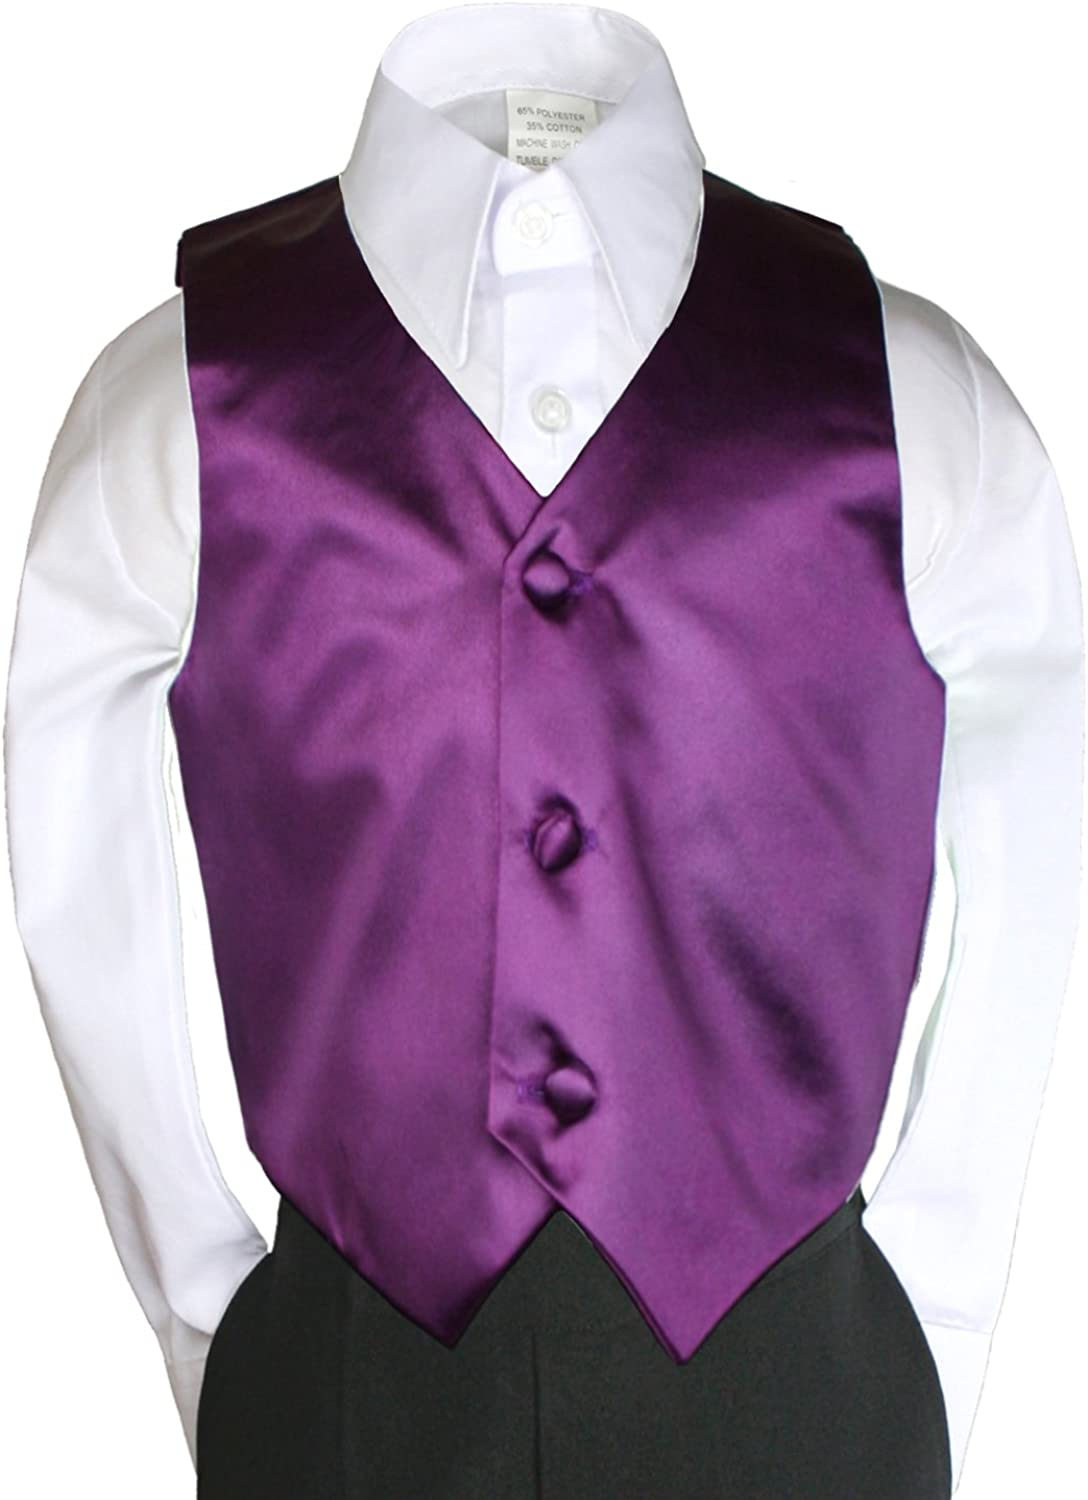 Eggplant Satin Vest Only for Baby Kid Teen Boy Wedding Party Formal Suit sz Sm-28